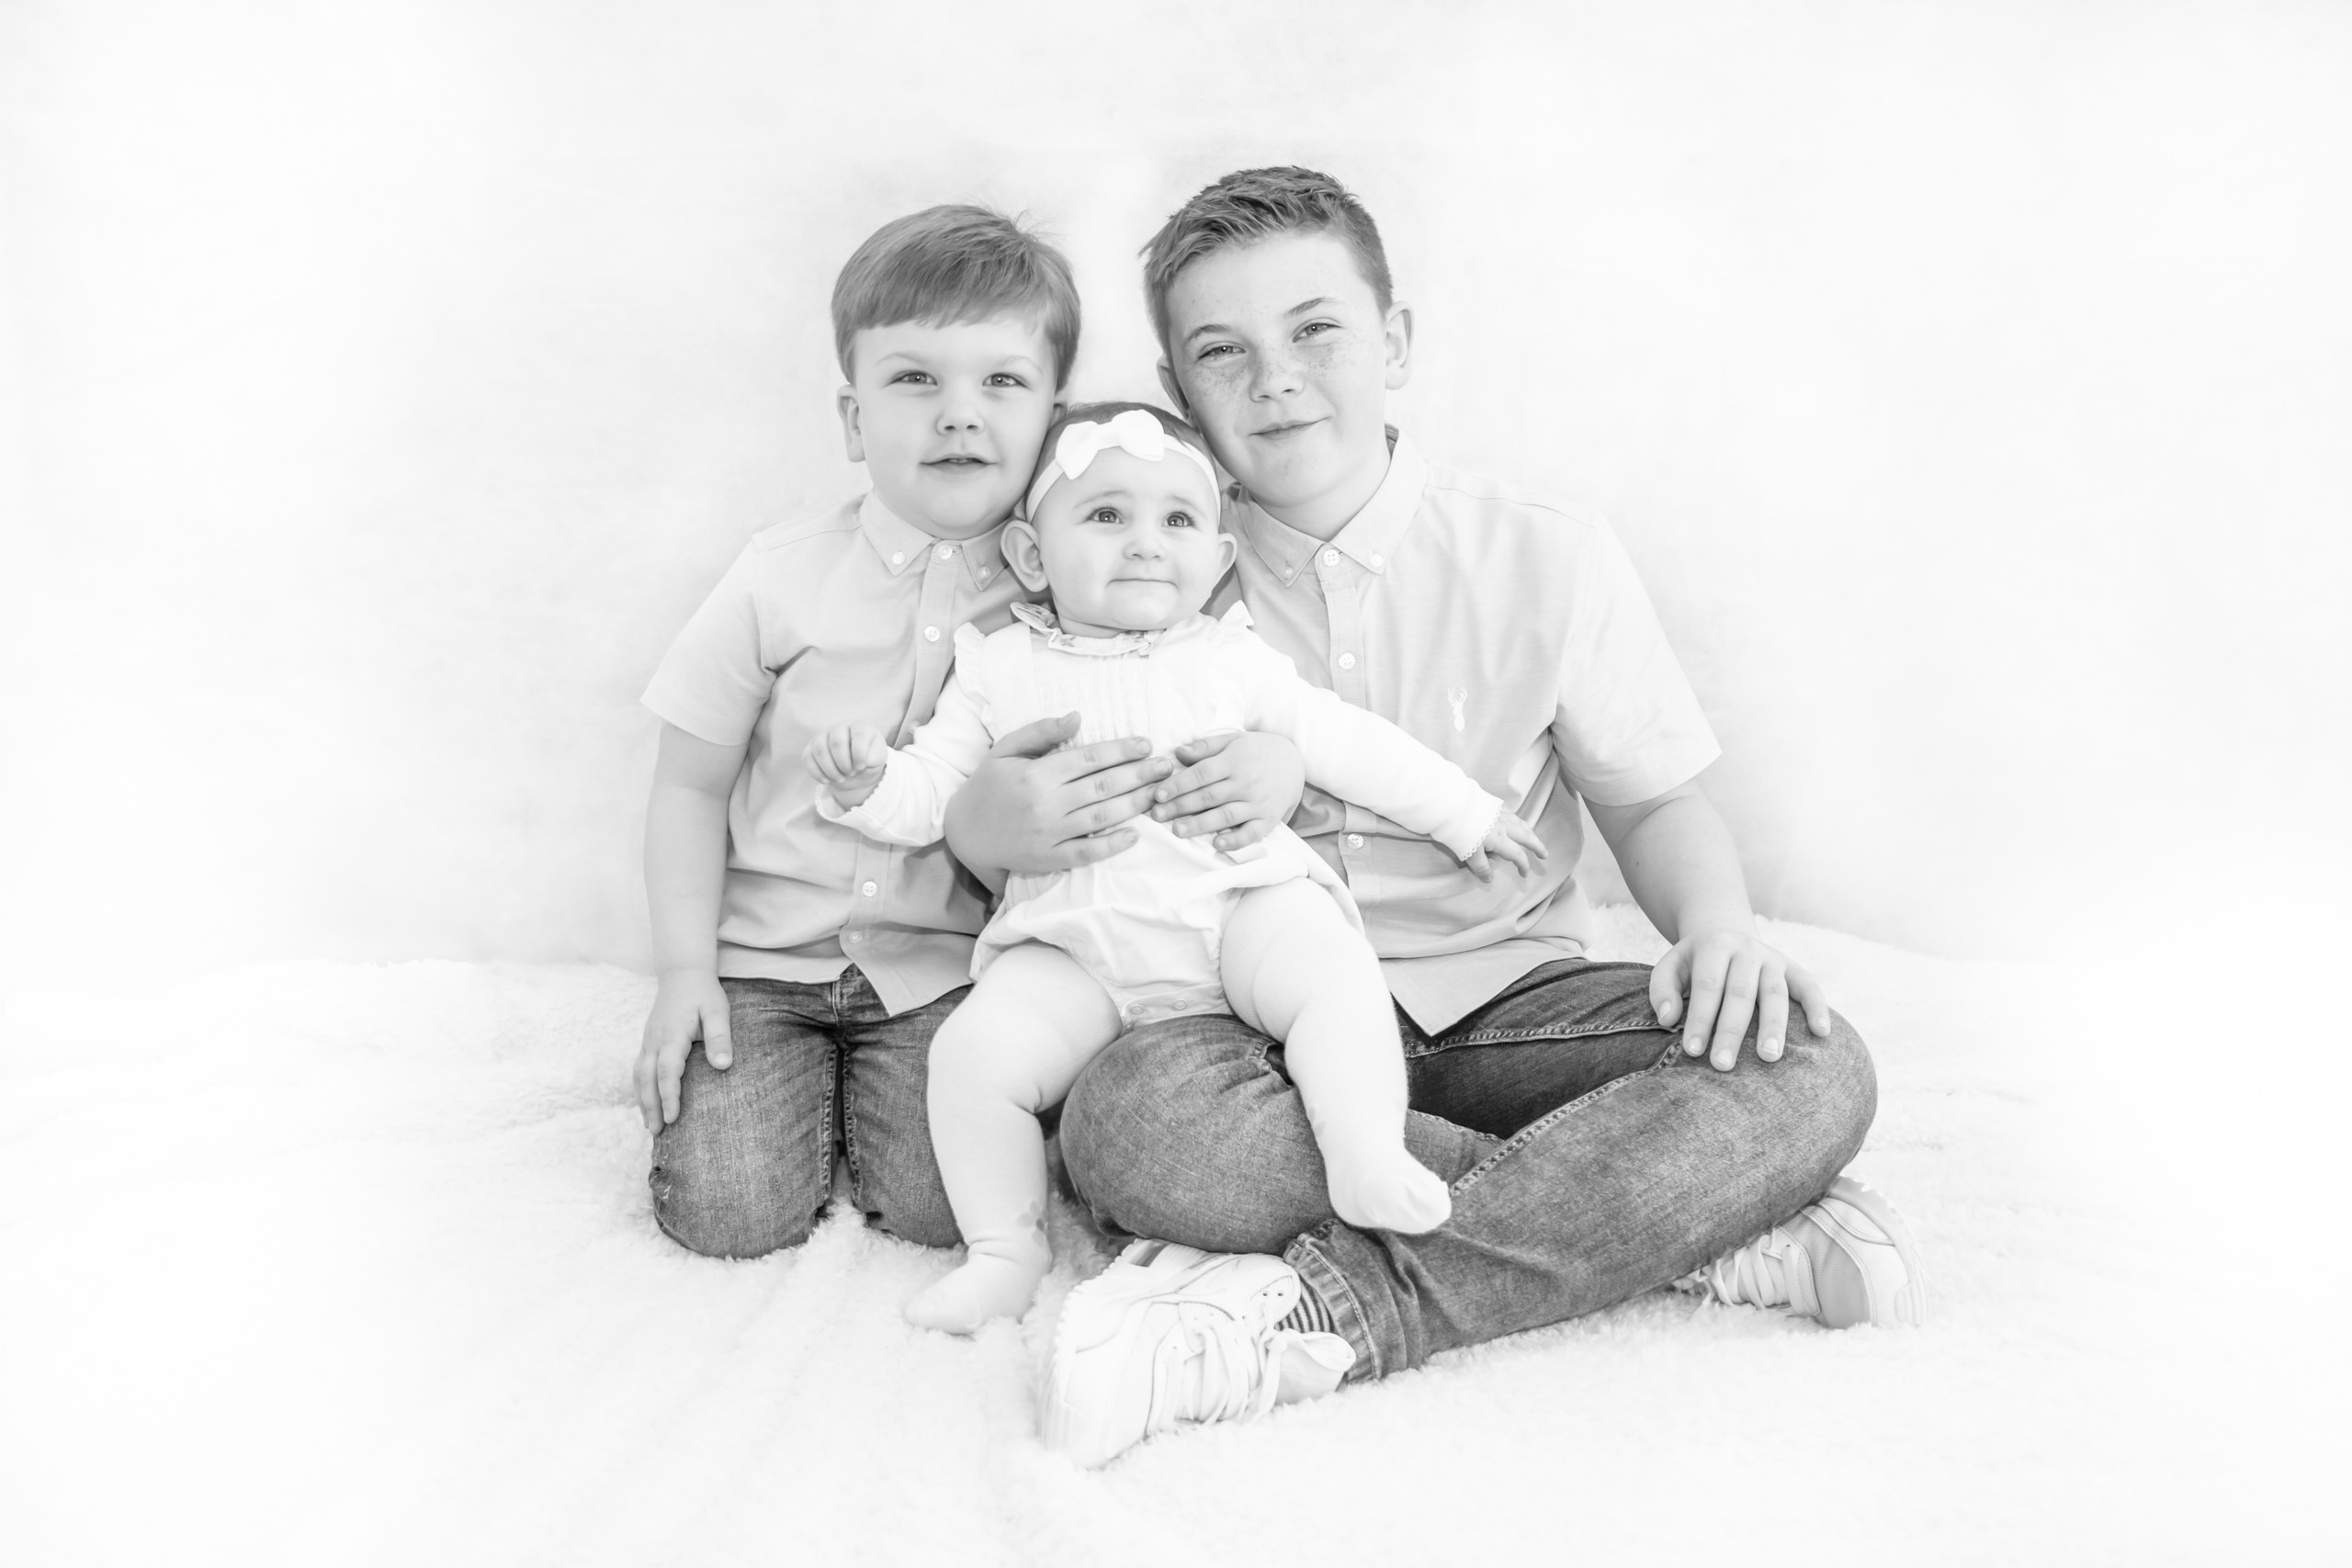 Swansea Family Portrait Black and White Photography. Photographer also covers the Gower, Carmarthenshire, Llanelli and South Wales for Babies, Children and Pets